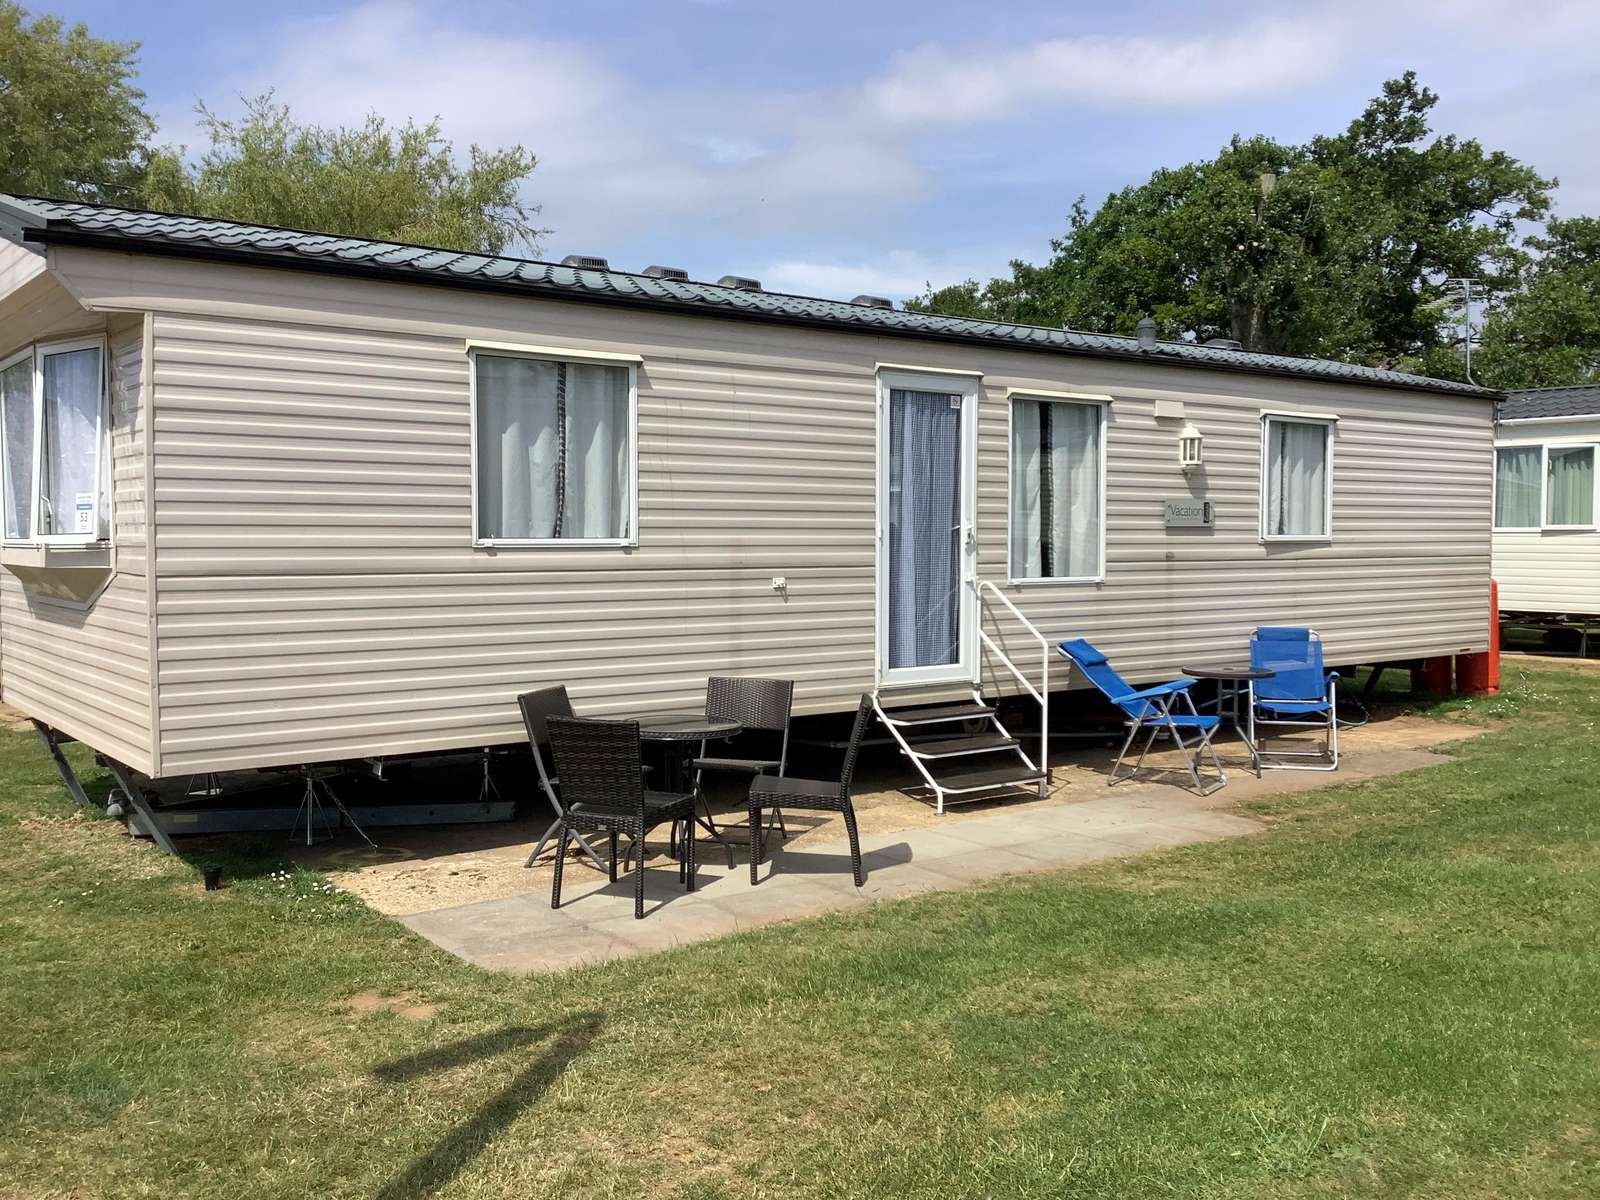 23004A- Anmer area, 2 bed, 6 berth caravan near to park amenities. Ruby rated. - property